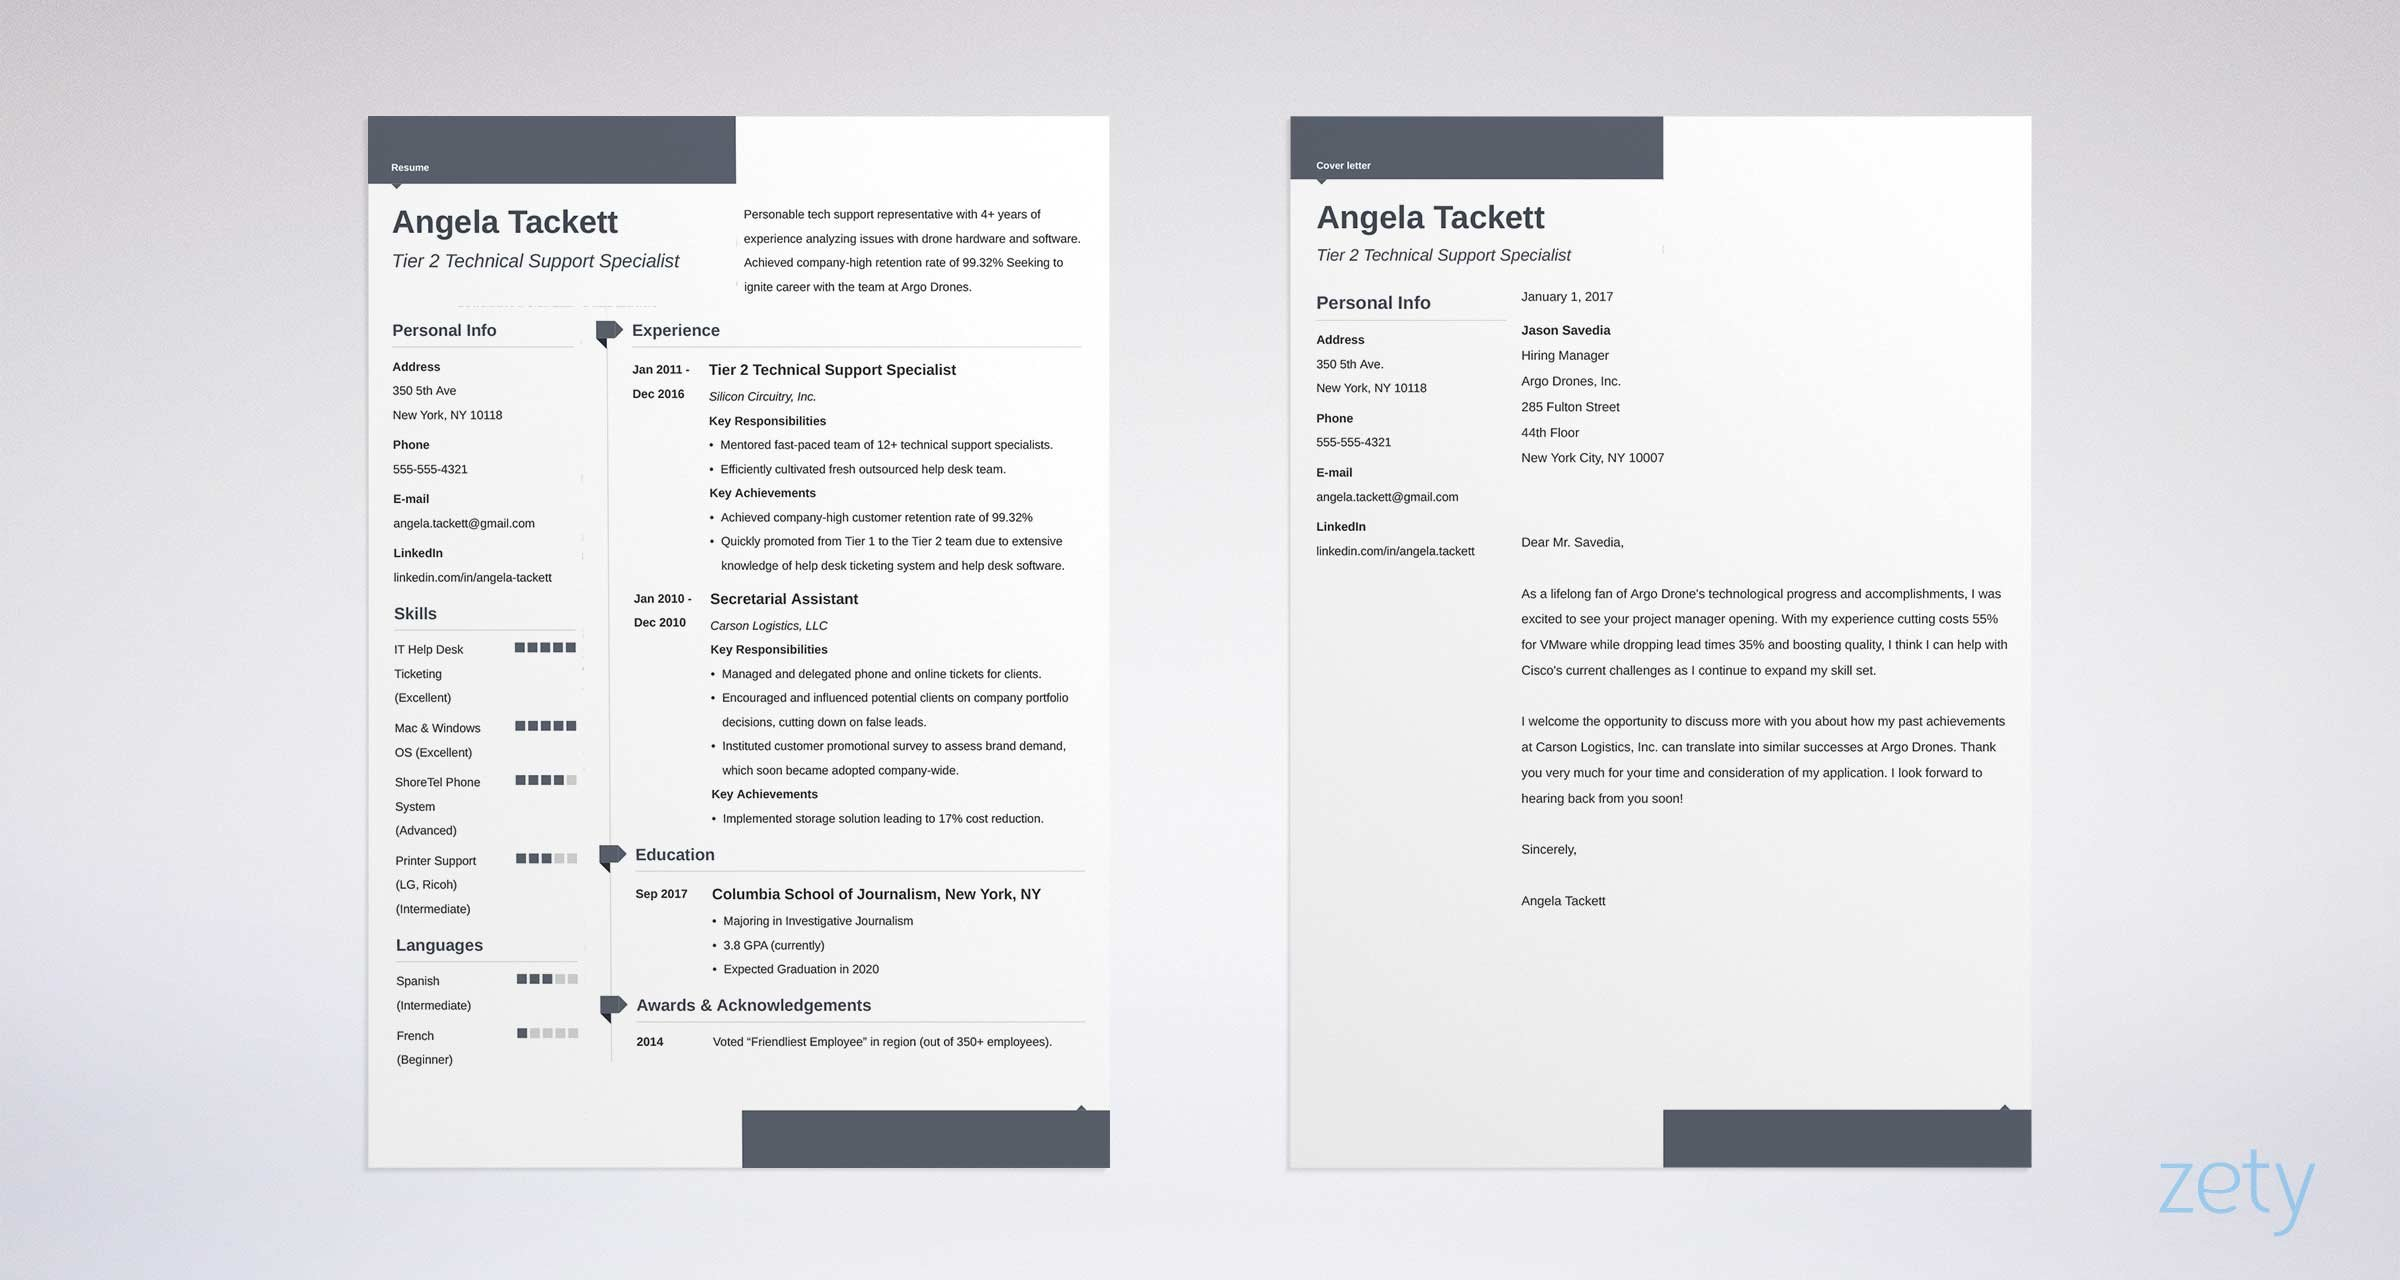 resume templates for microsoft word free executive template lying about employment dates Resume Executive Resume Template 2019 Free